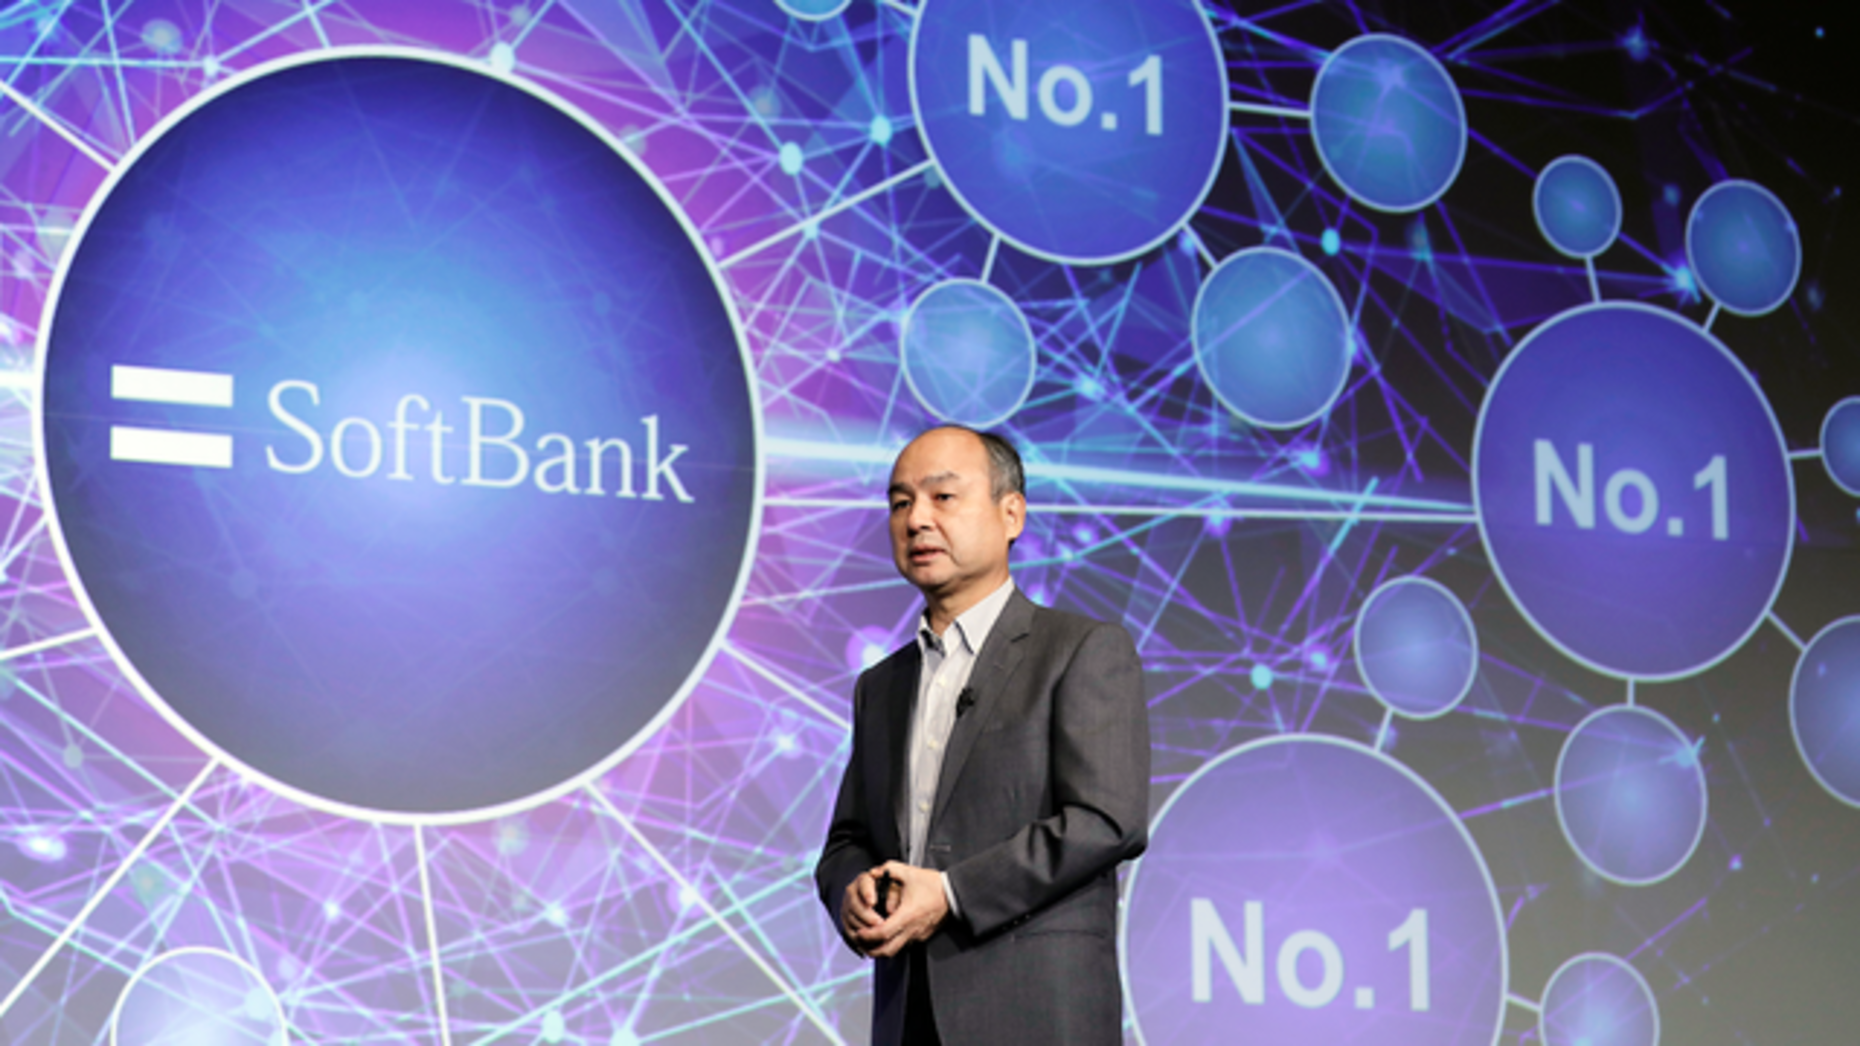 SoftBank CEO Masayoshi Son at a news conference in Tokyo last month. Photo: Bloomberg